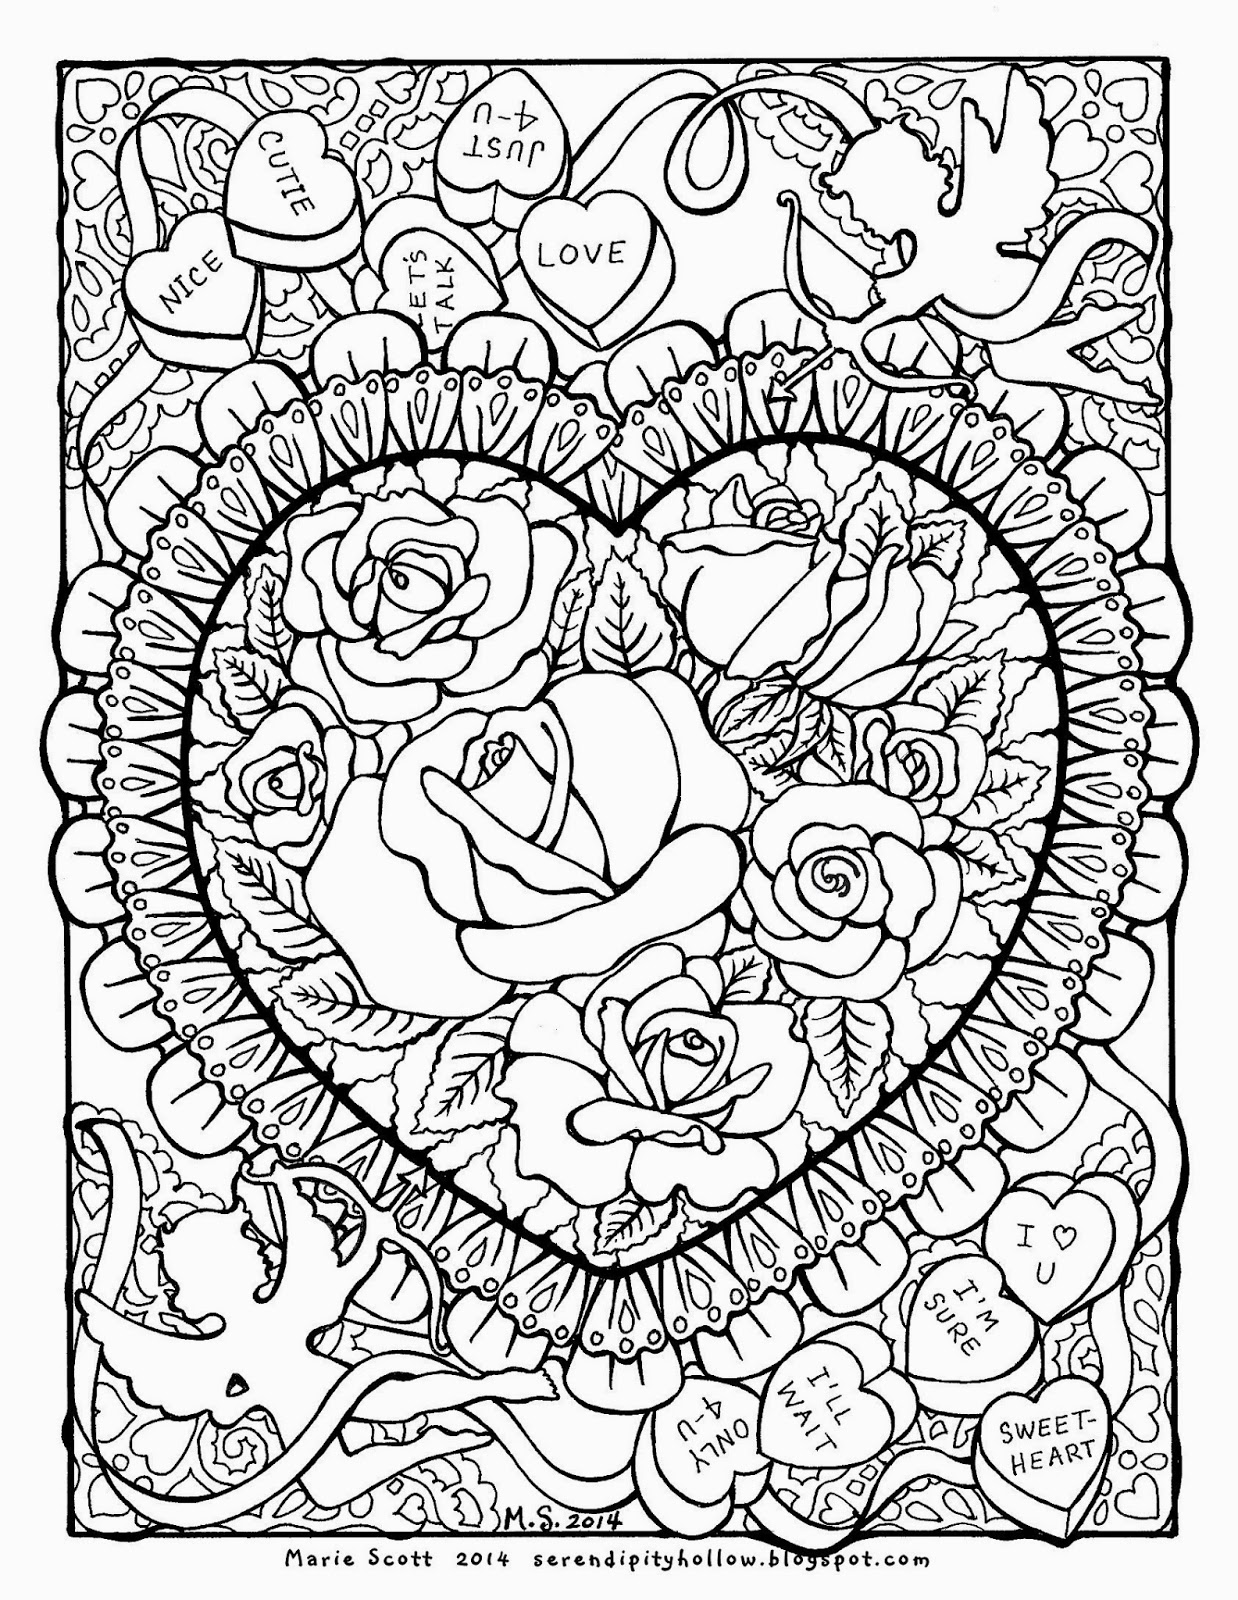 Serendipity Hollow Coloring Book Page February